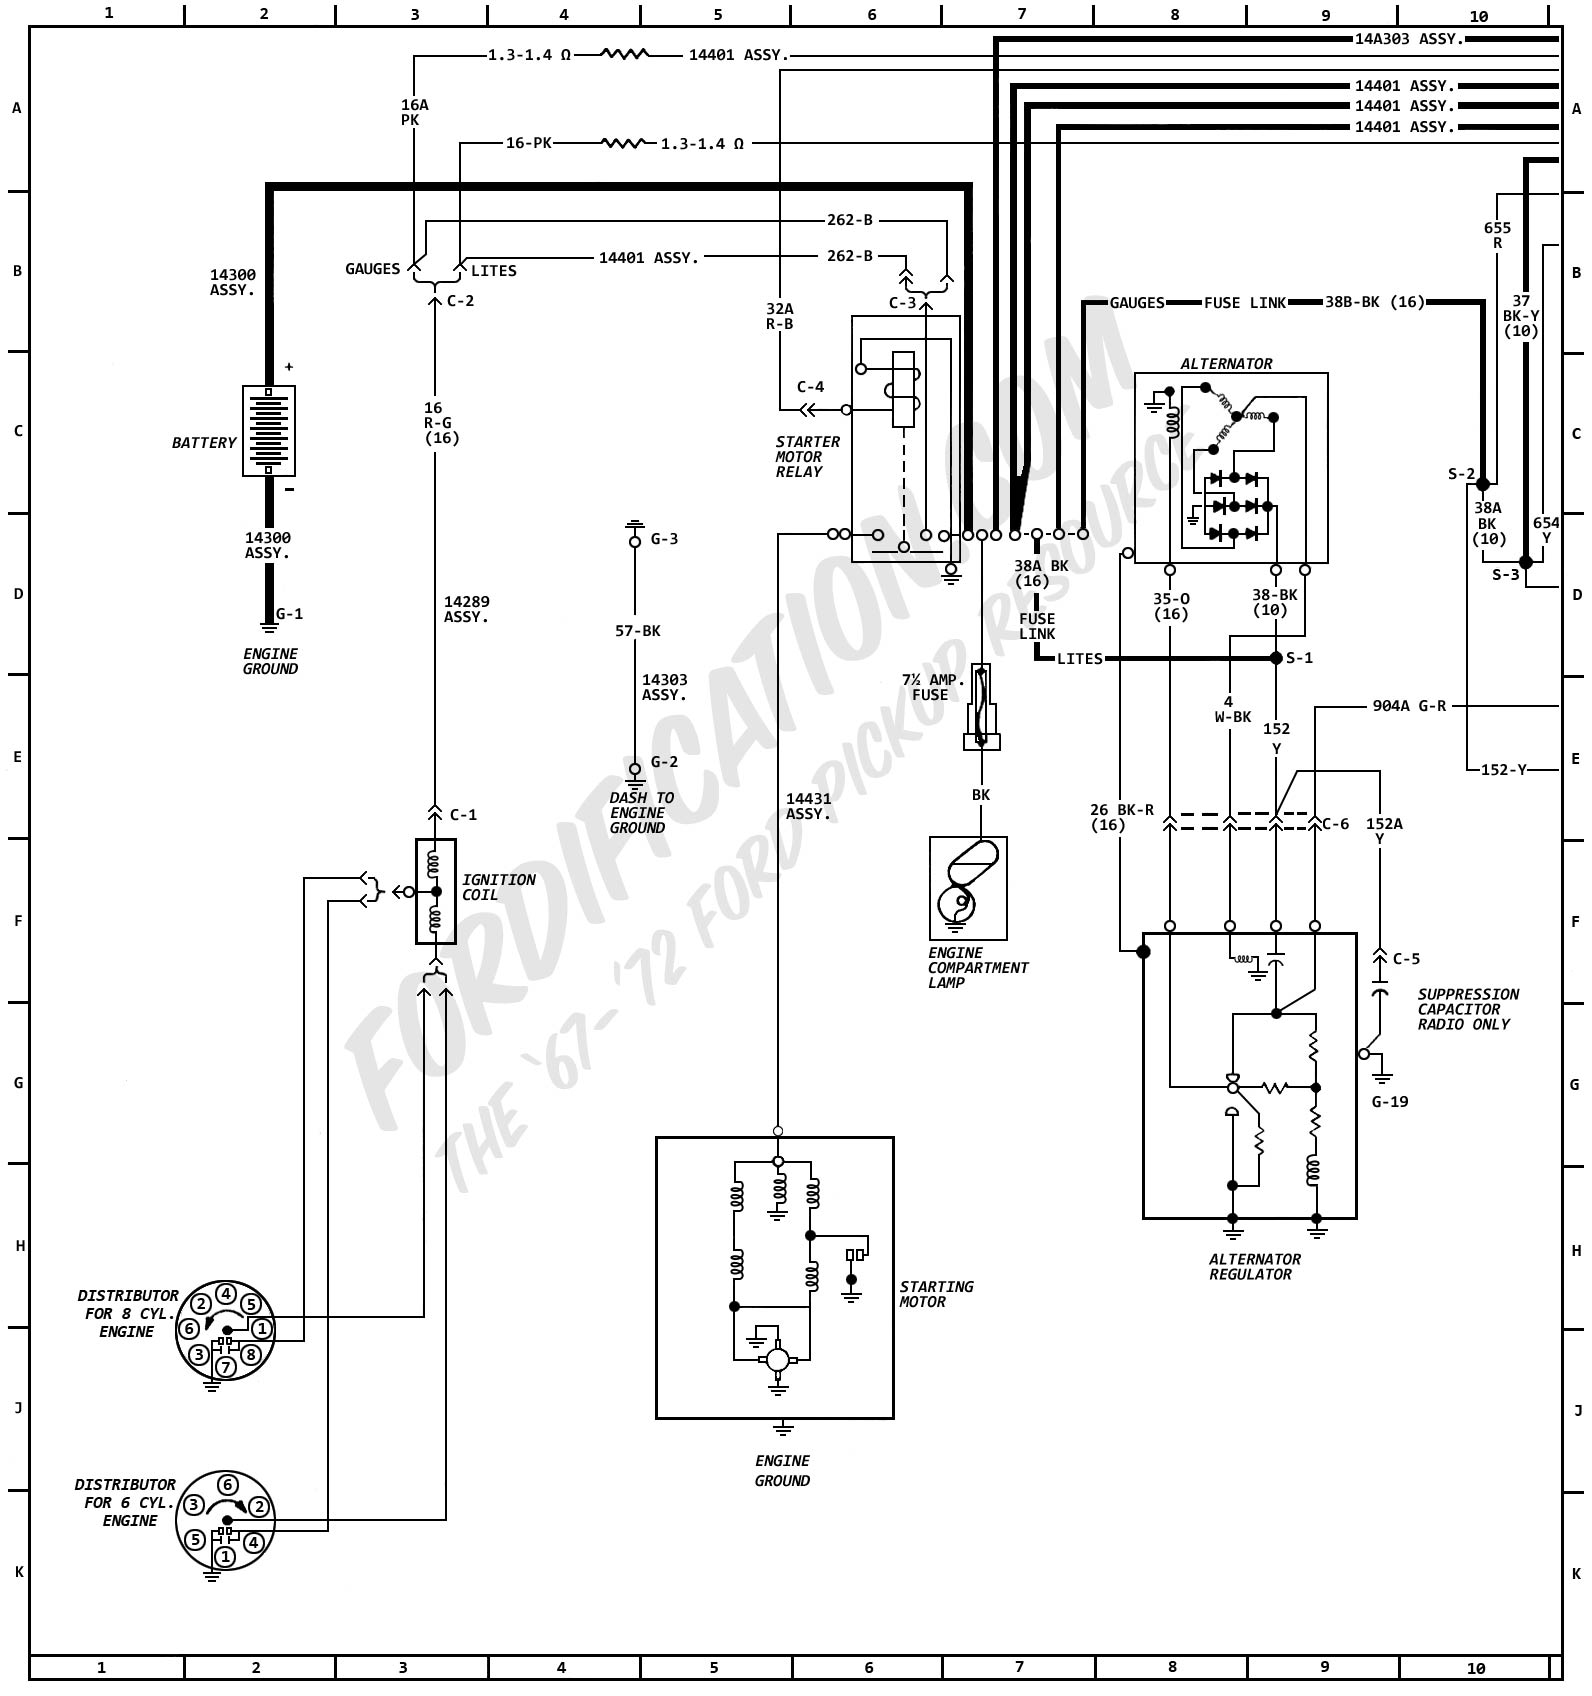 3412 1972 Bmw 2002 Wiring Diagram Schematic | Wiring ResourcesWiring Resources